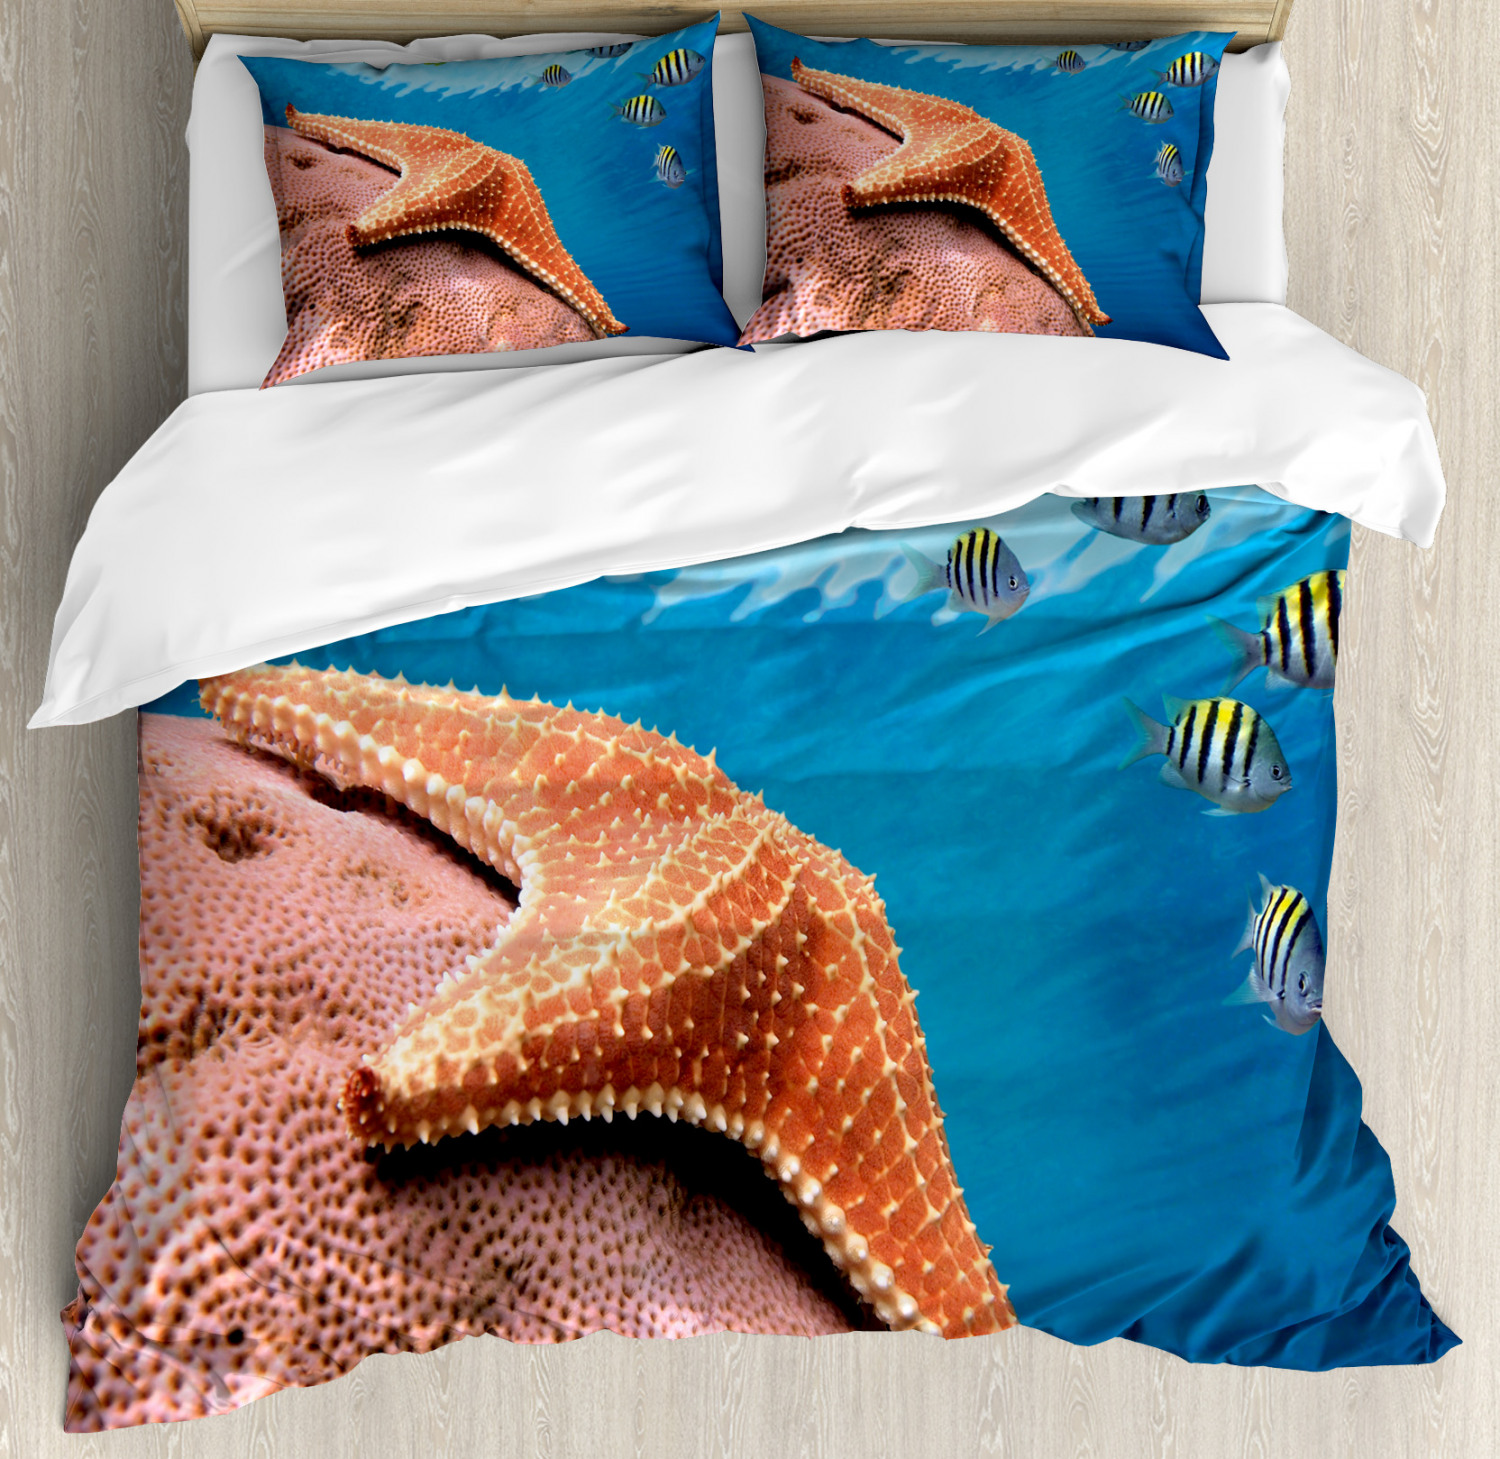 Starfish Duvet Cover Set with Pillow Shams Coral Fishes Sea Print